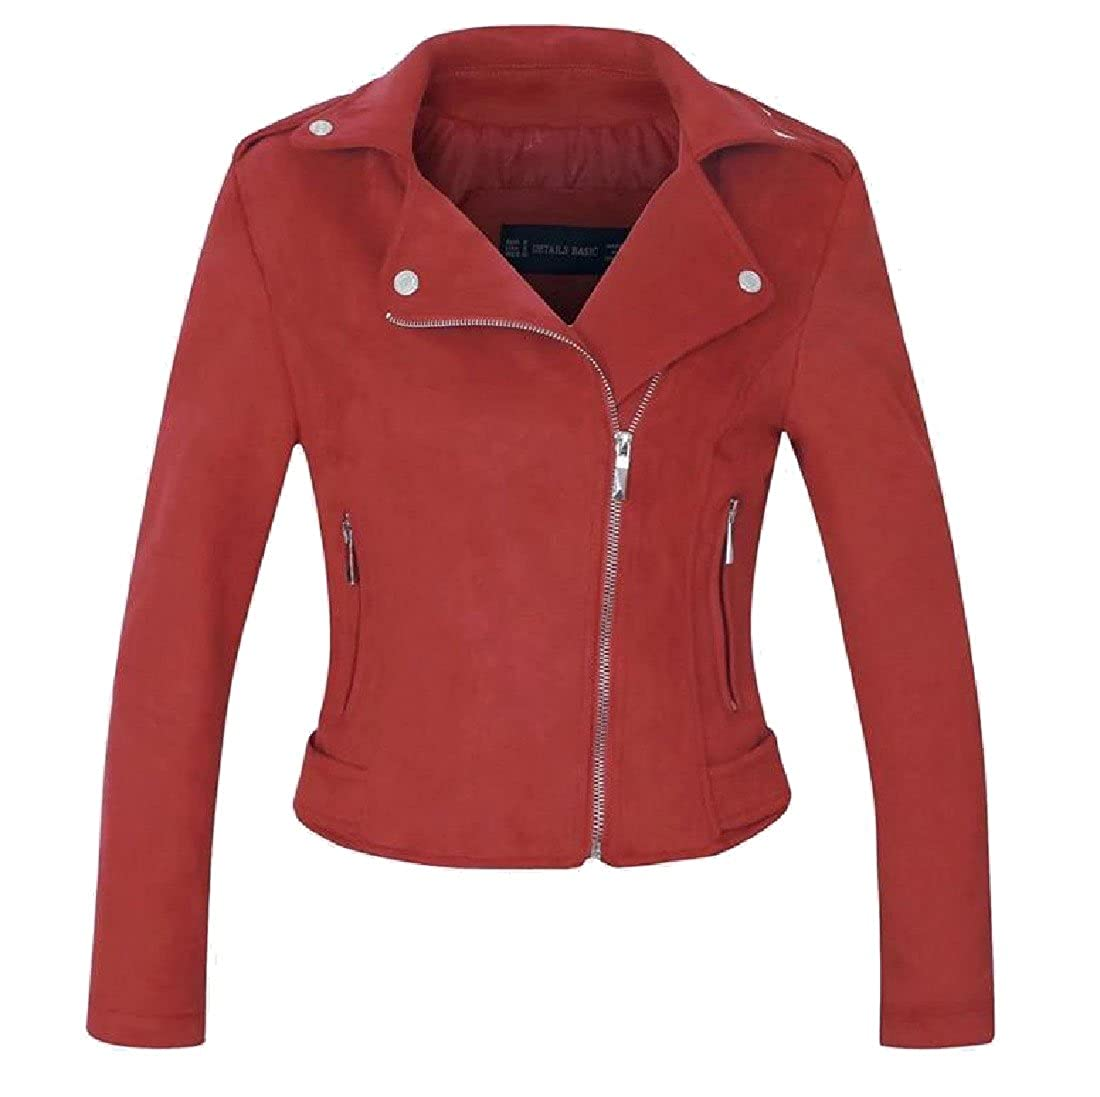 Sheng Xi Women's Pure Color PU Leather Zip Lapel Short Suit Jacket Tops